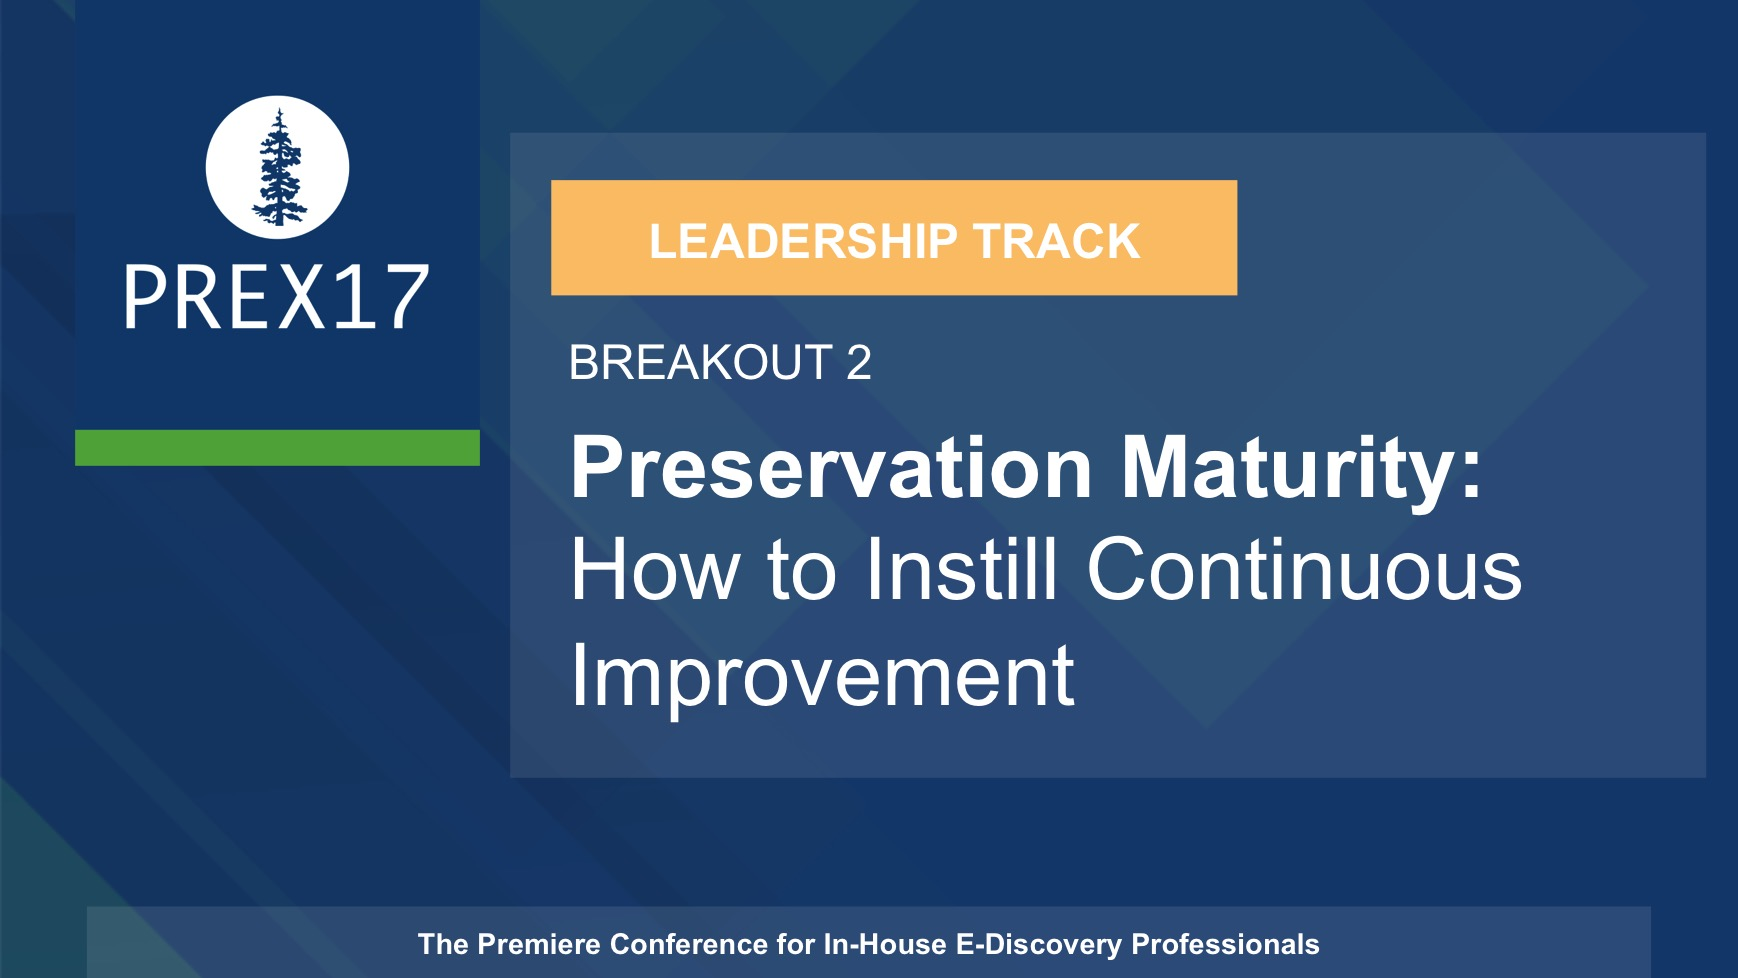 (Breakout 2 - Leadership) Preservation Maturity: How to Instill Continuous Improvement